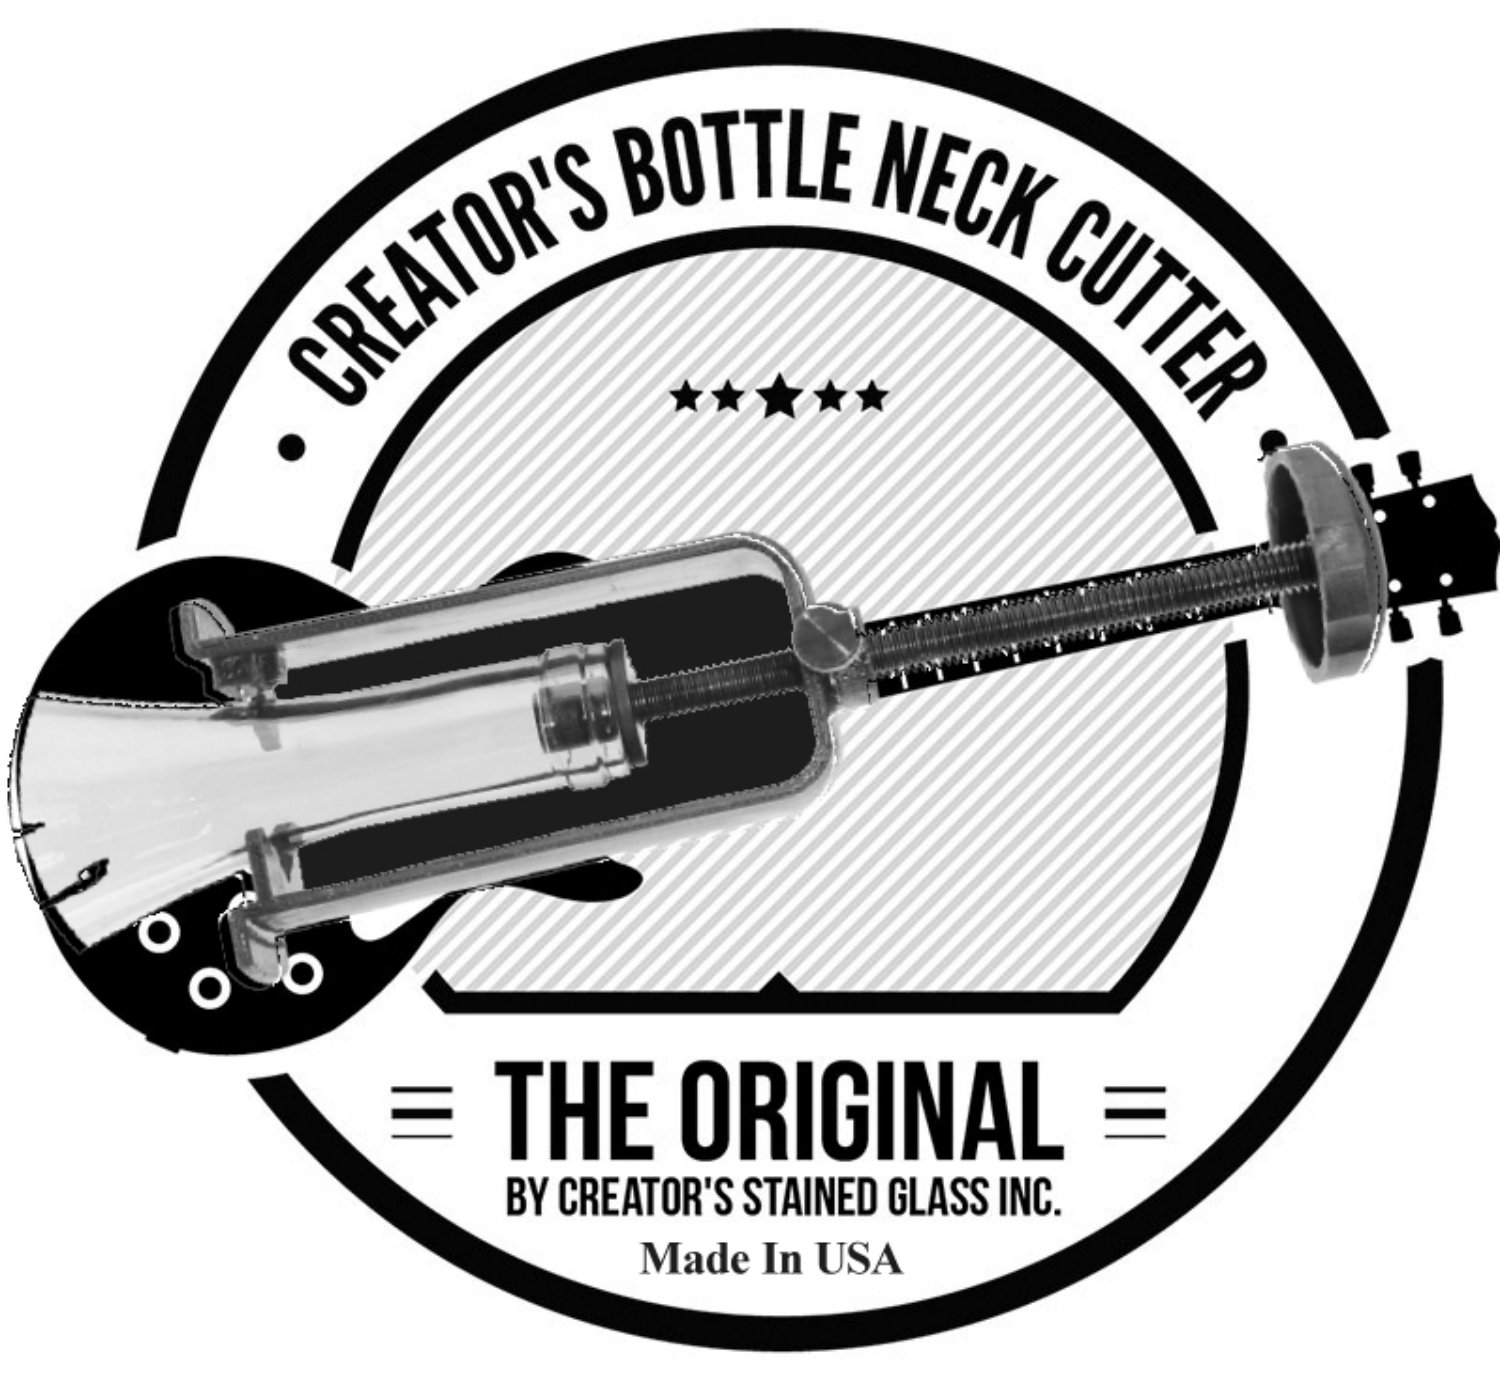 Creator's Bottle Neck Cutter - Blue - DIY Machine - Includes Abrasive Stone - Born And Made In The USA by Creator's